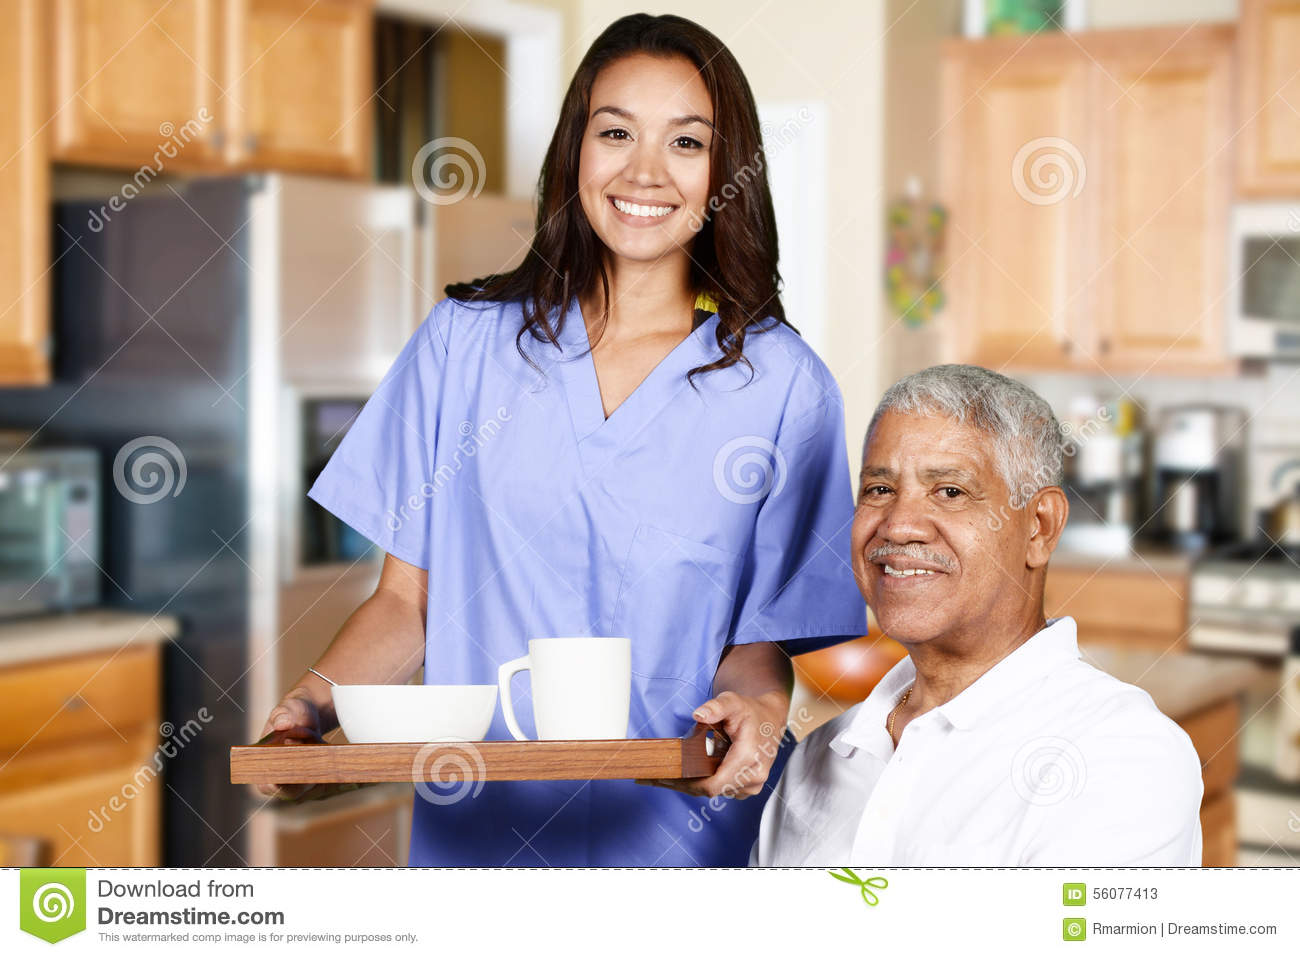 health care workers Healthcare workers, wondering how to have a healthier life without compromising your tasks this article outlines 10 ways to help you do that.